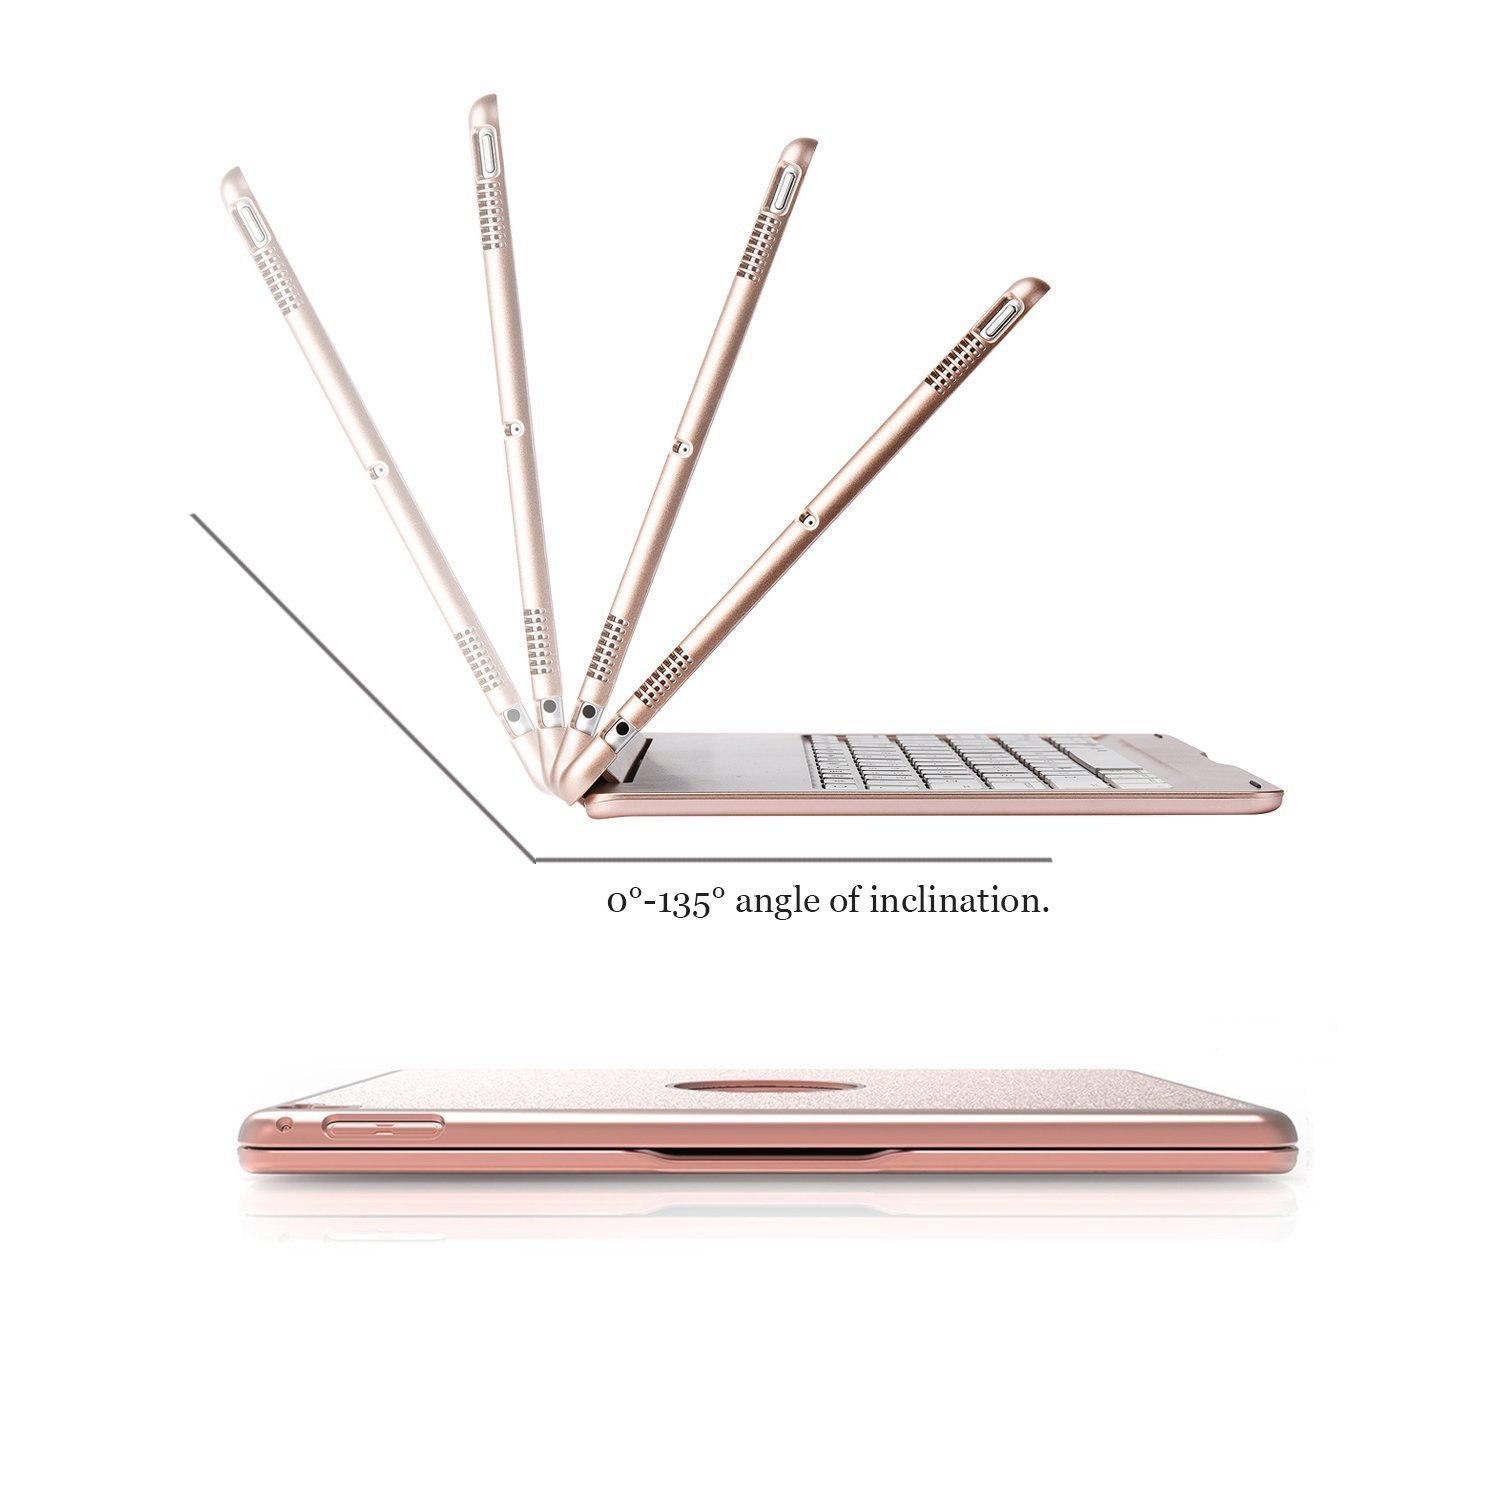 Keyboard Case for iPad Pro 12.9,7 Colors Backlight Slim Aluminum Wireless Keyboard with Protective Translucent Silicone Keyboard Cover and 5600 mAh Power Bank for iPad Pro 12.9 inch(12.9 Rose Gold) by KINGZE (Image #5)